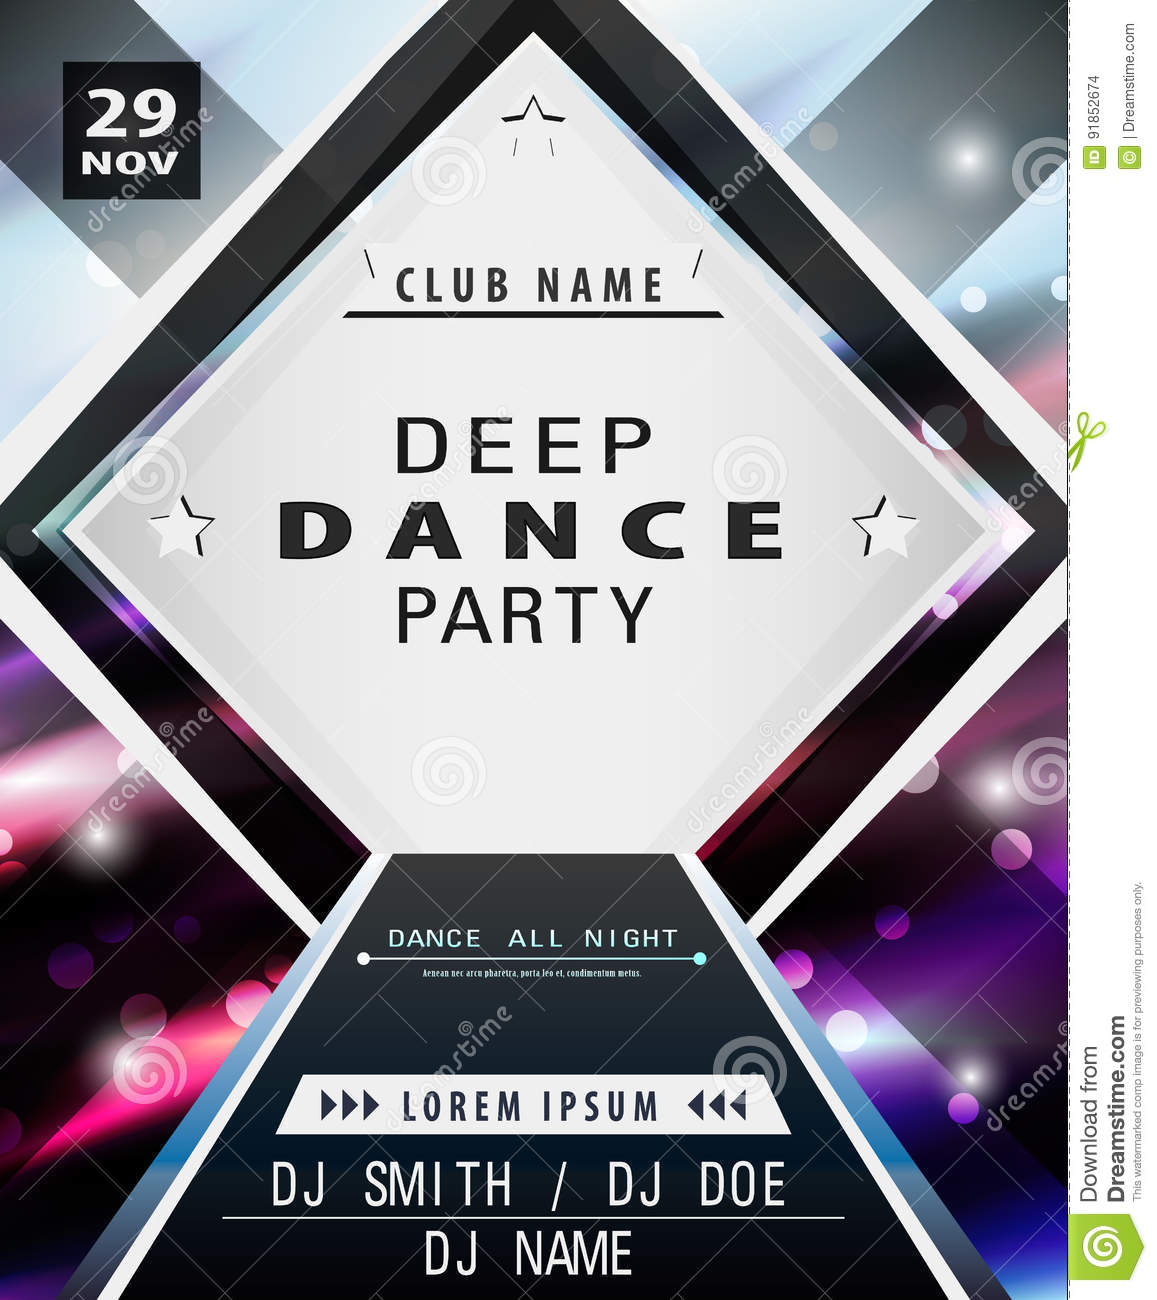 Disco poster template stock vector. Illustration of background ...